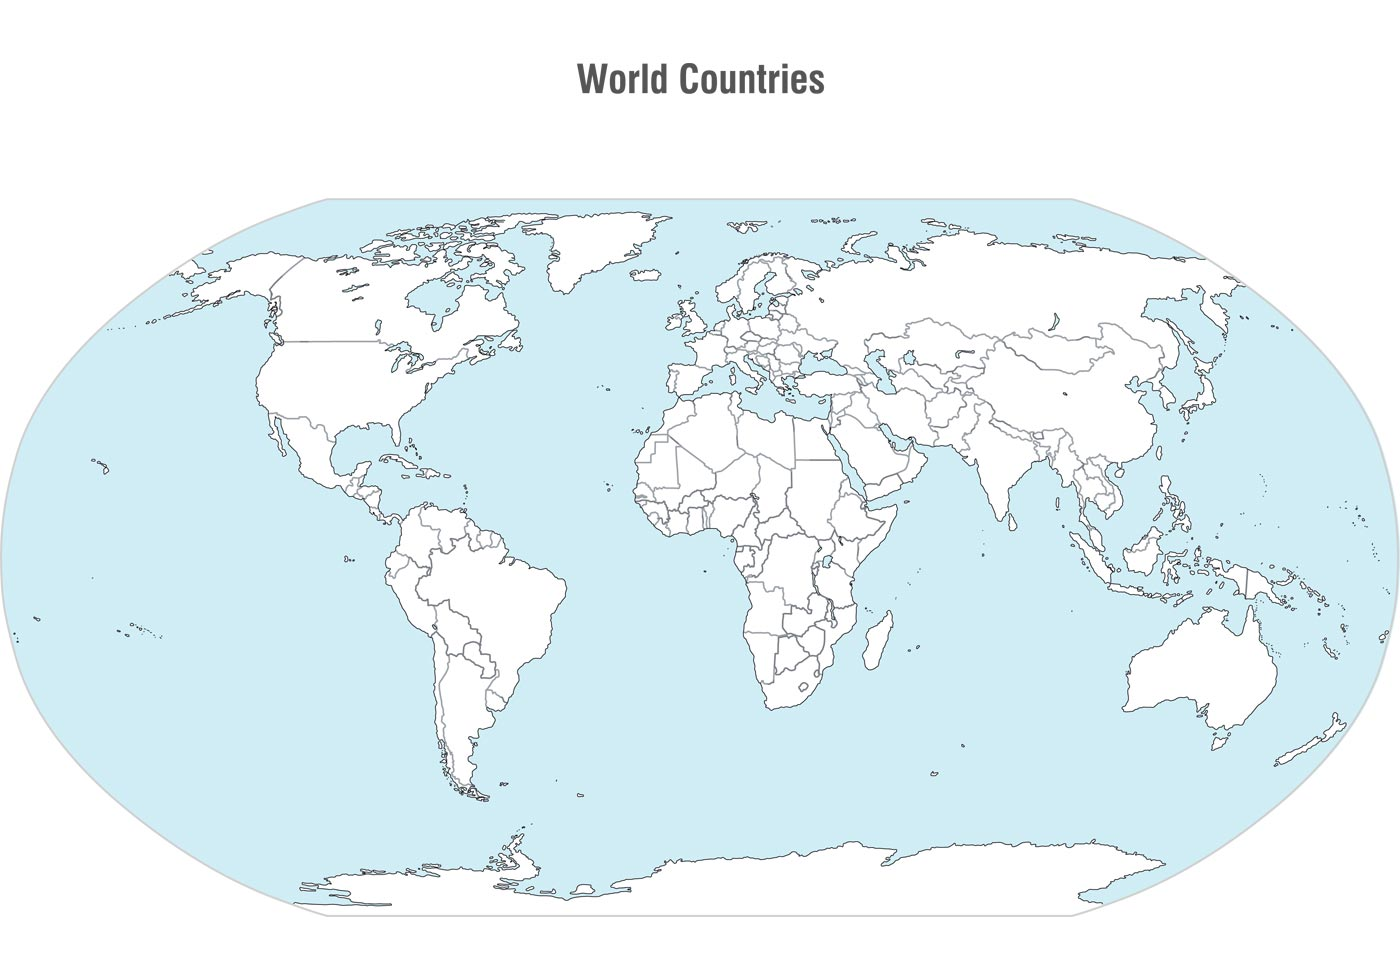 World Countries Map Vector Download Free Vector Art Stock - Map of countries of the world